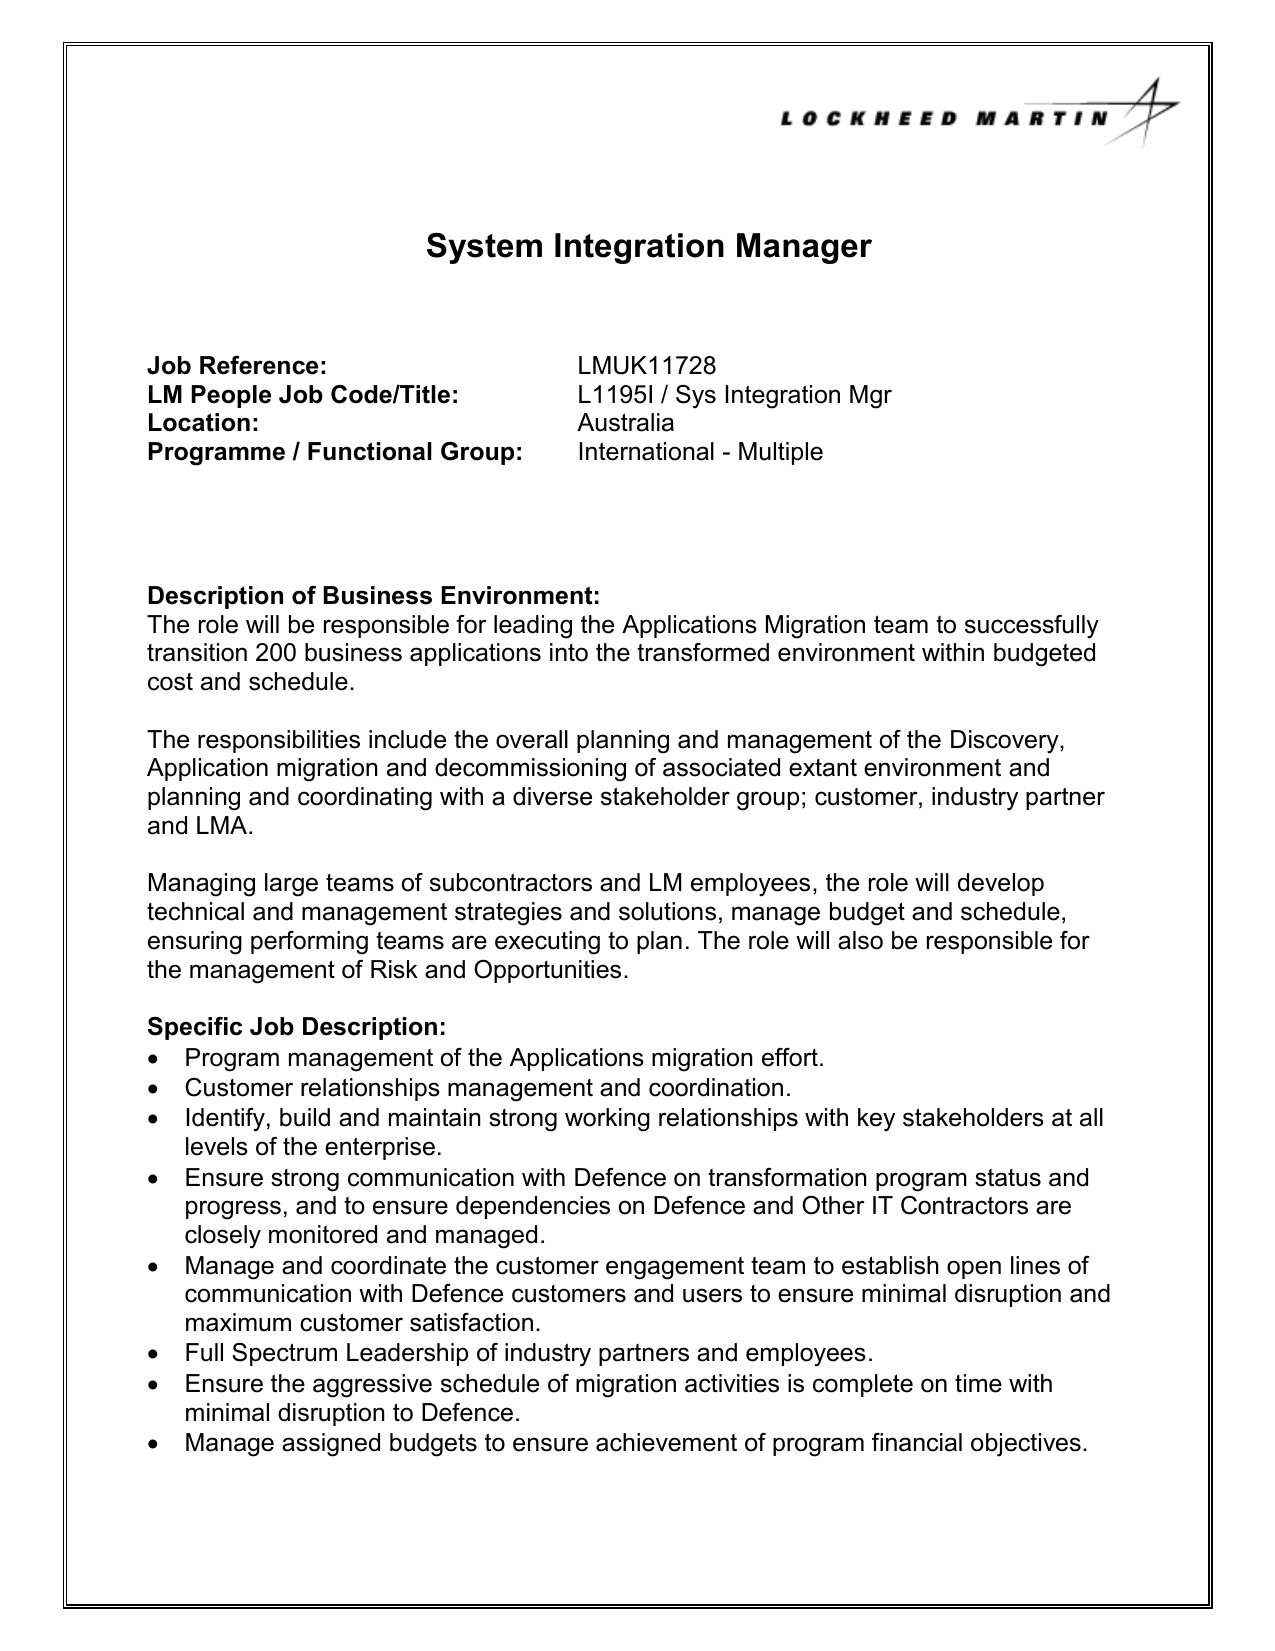 System Integration Manager